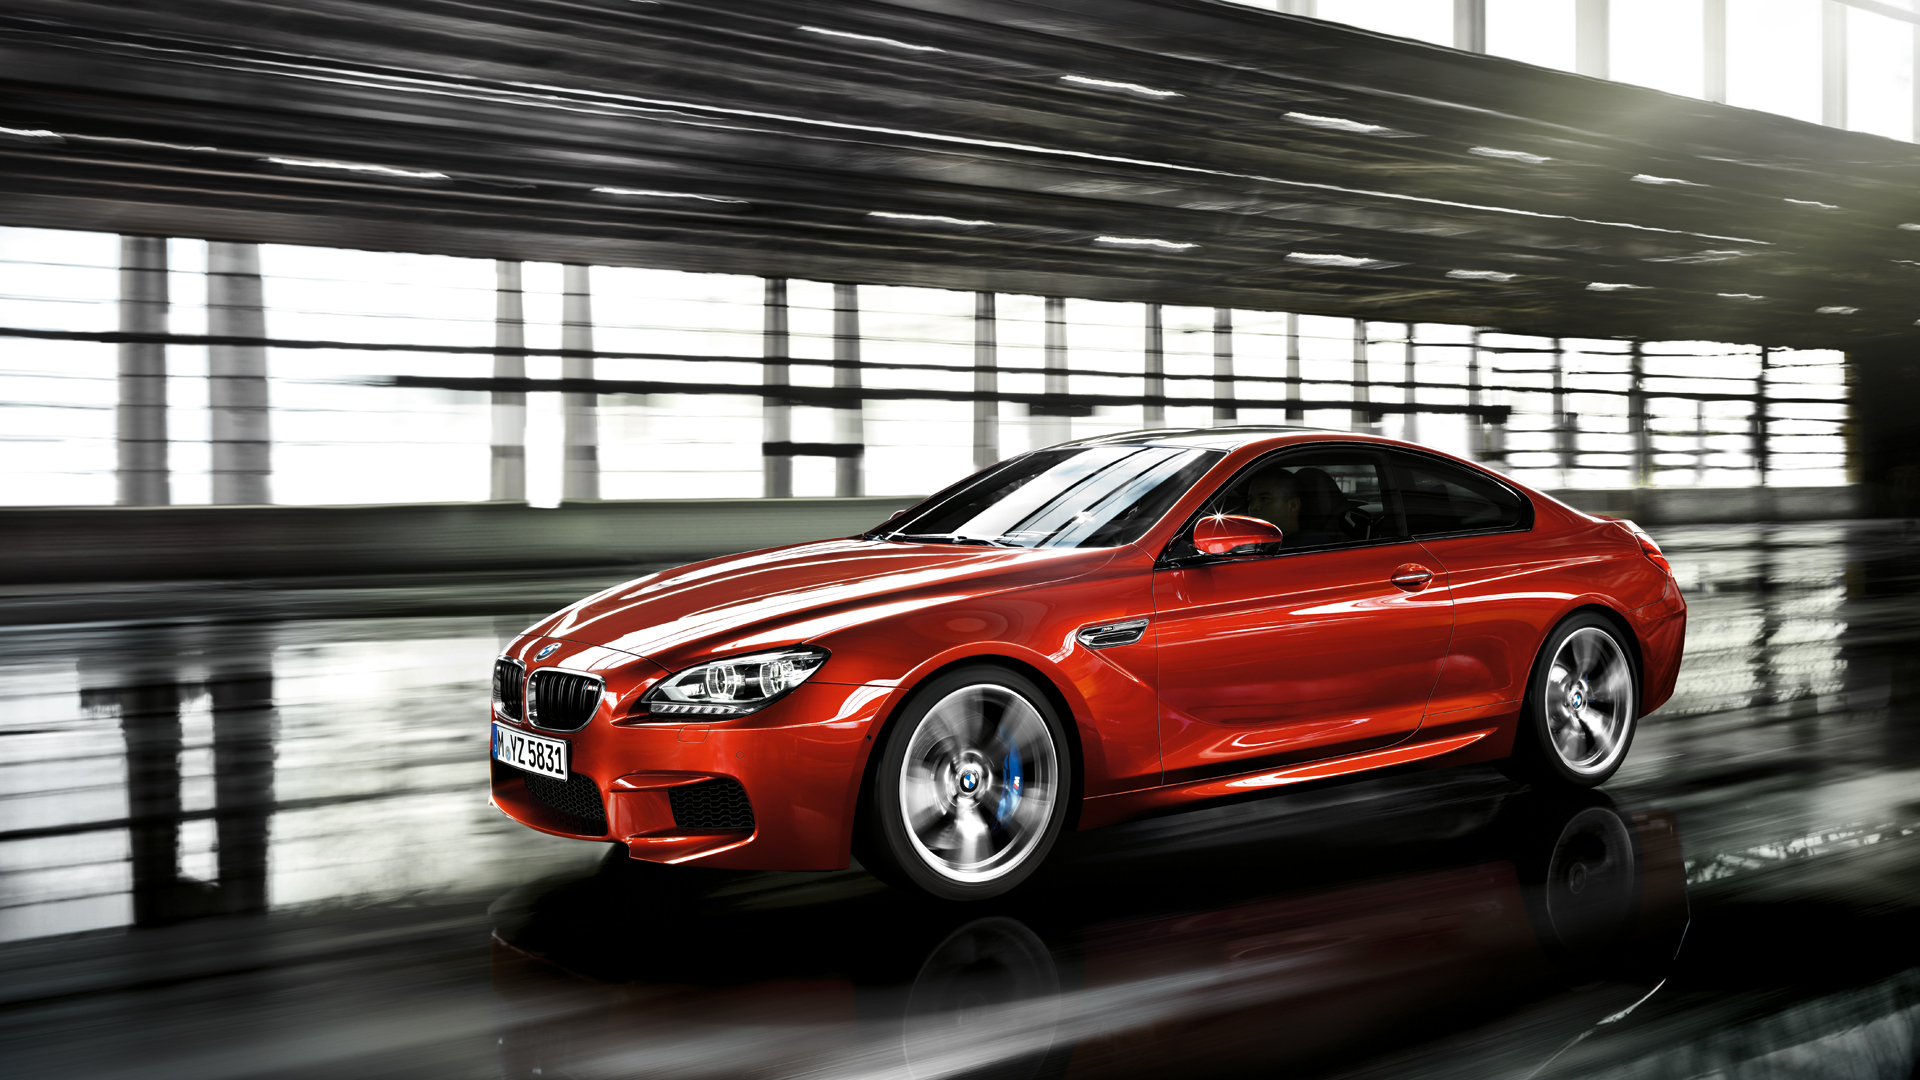 BMW-M6-coupe-image-gallery-4-1920